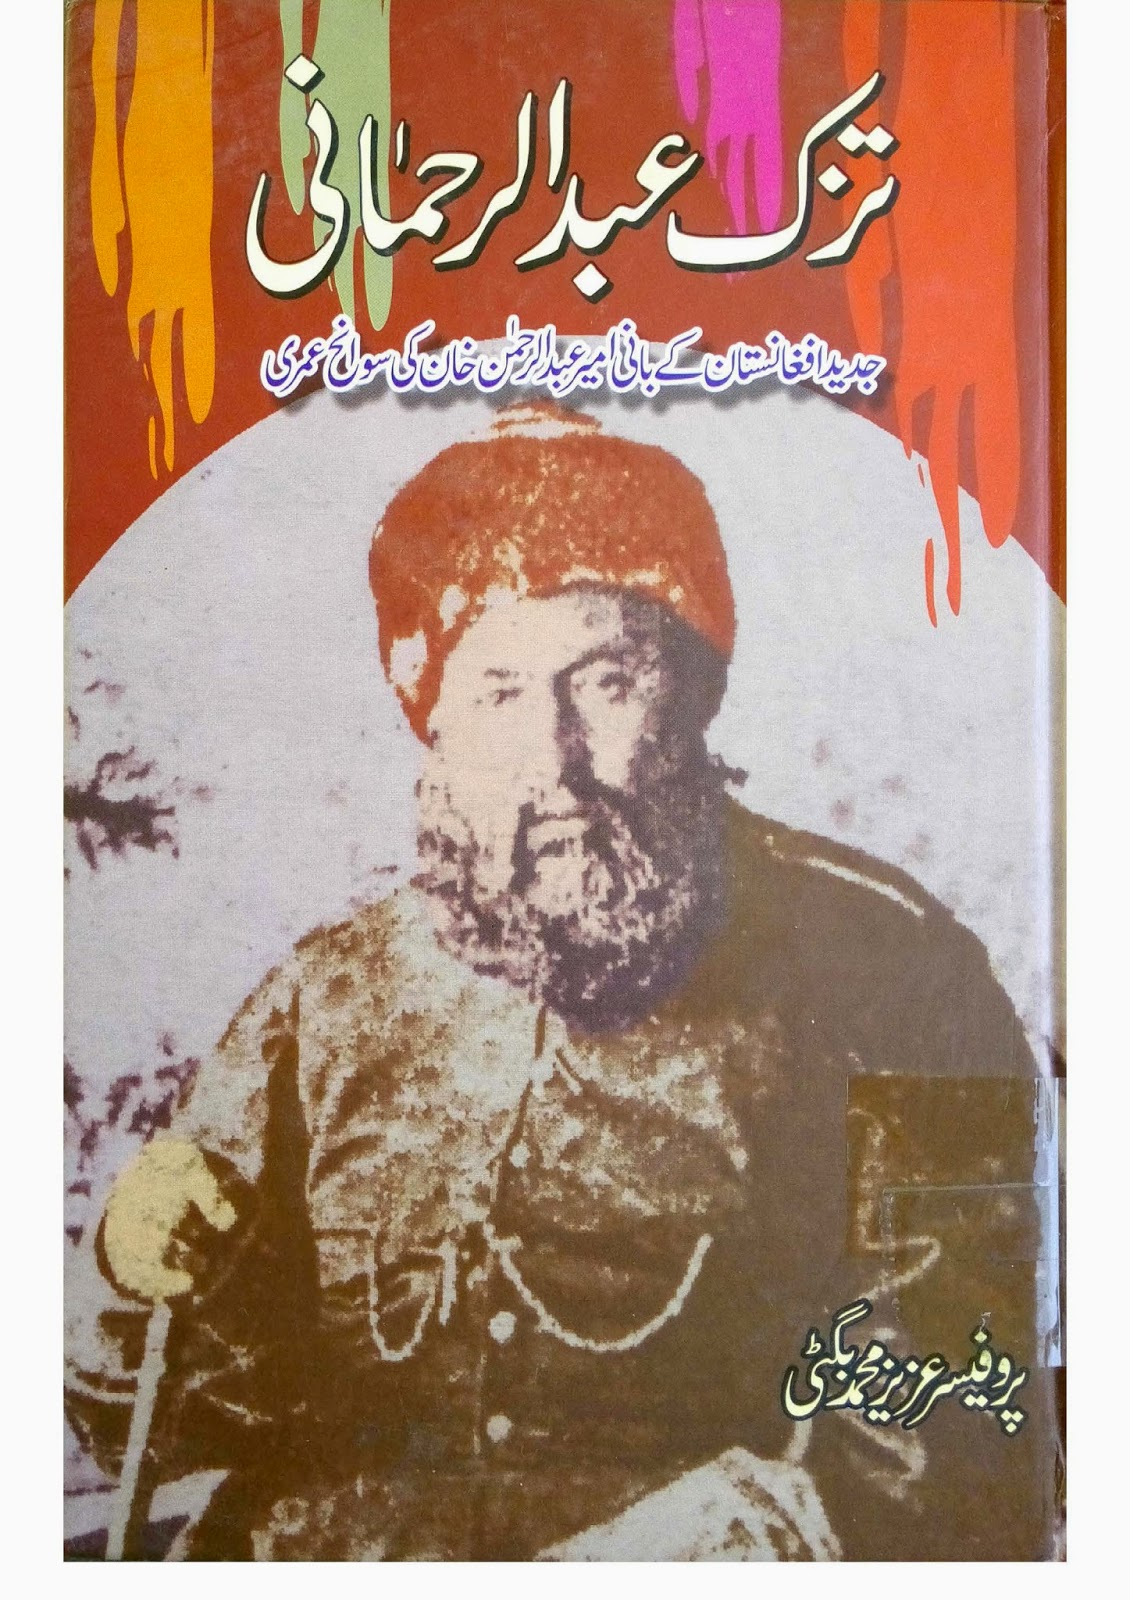 Biography of Amir Abdul Rahman in Urdu